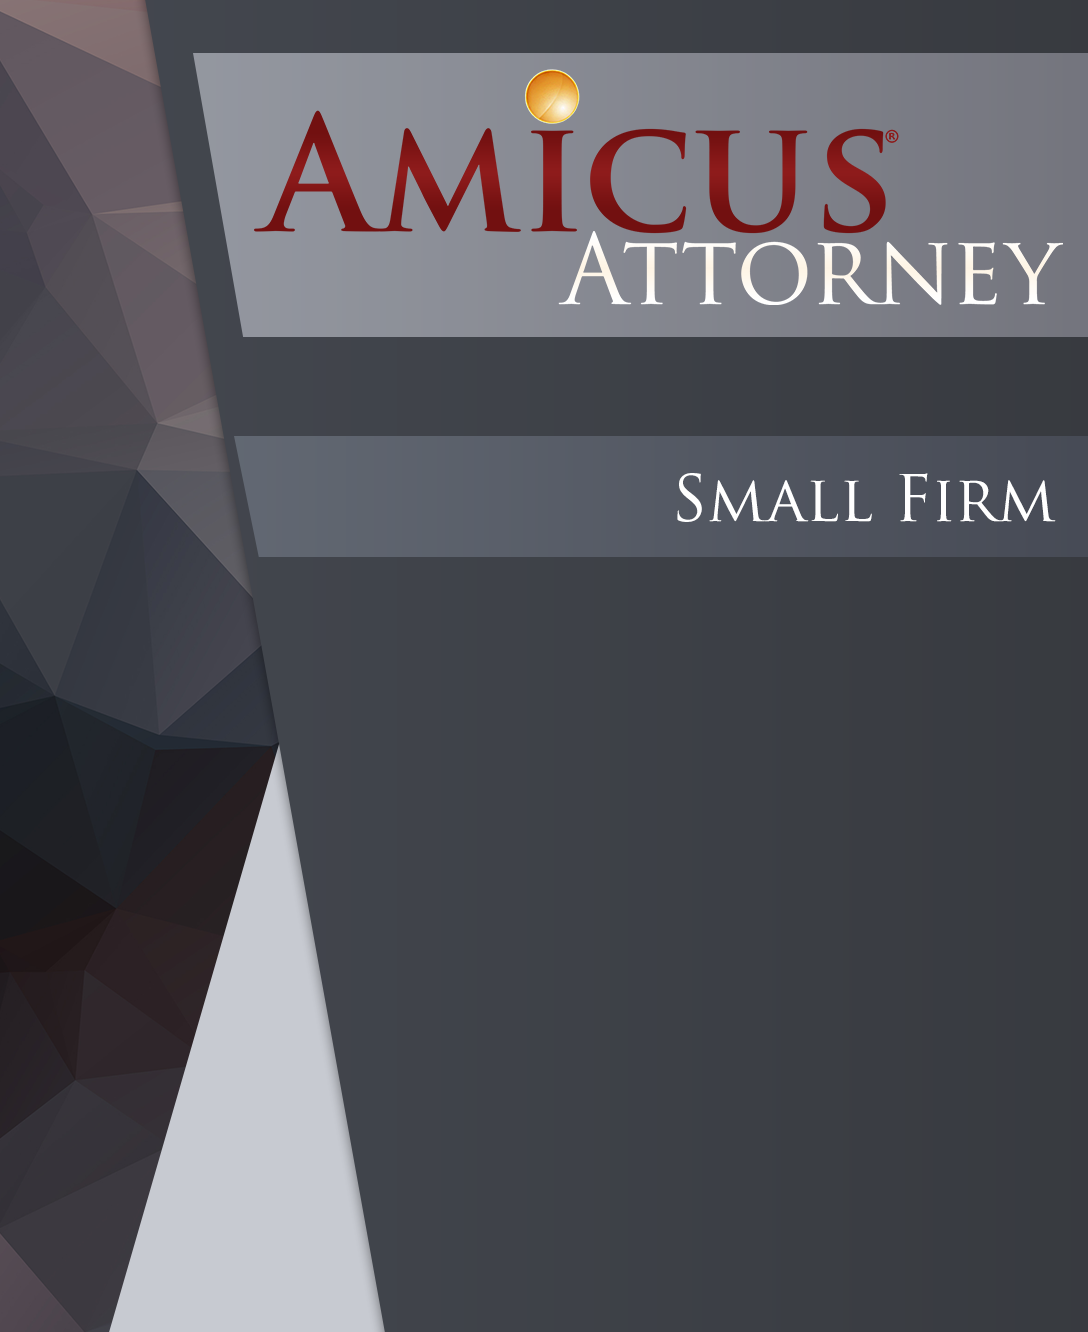 Amicus Attorney Small Firm